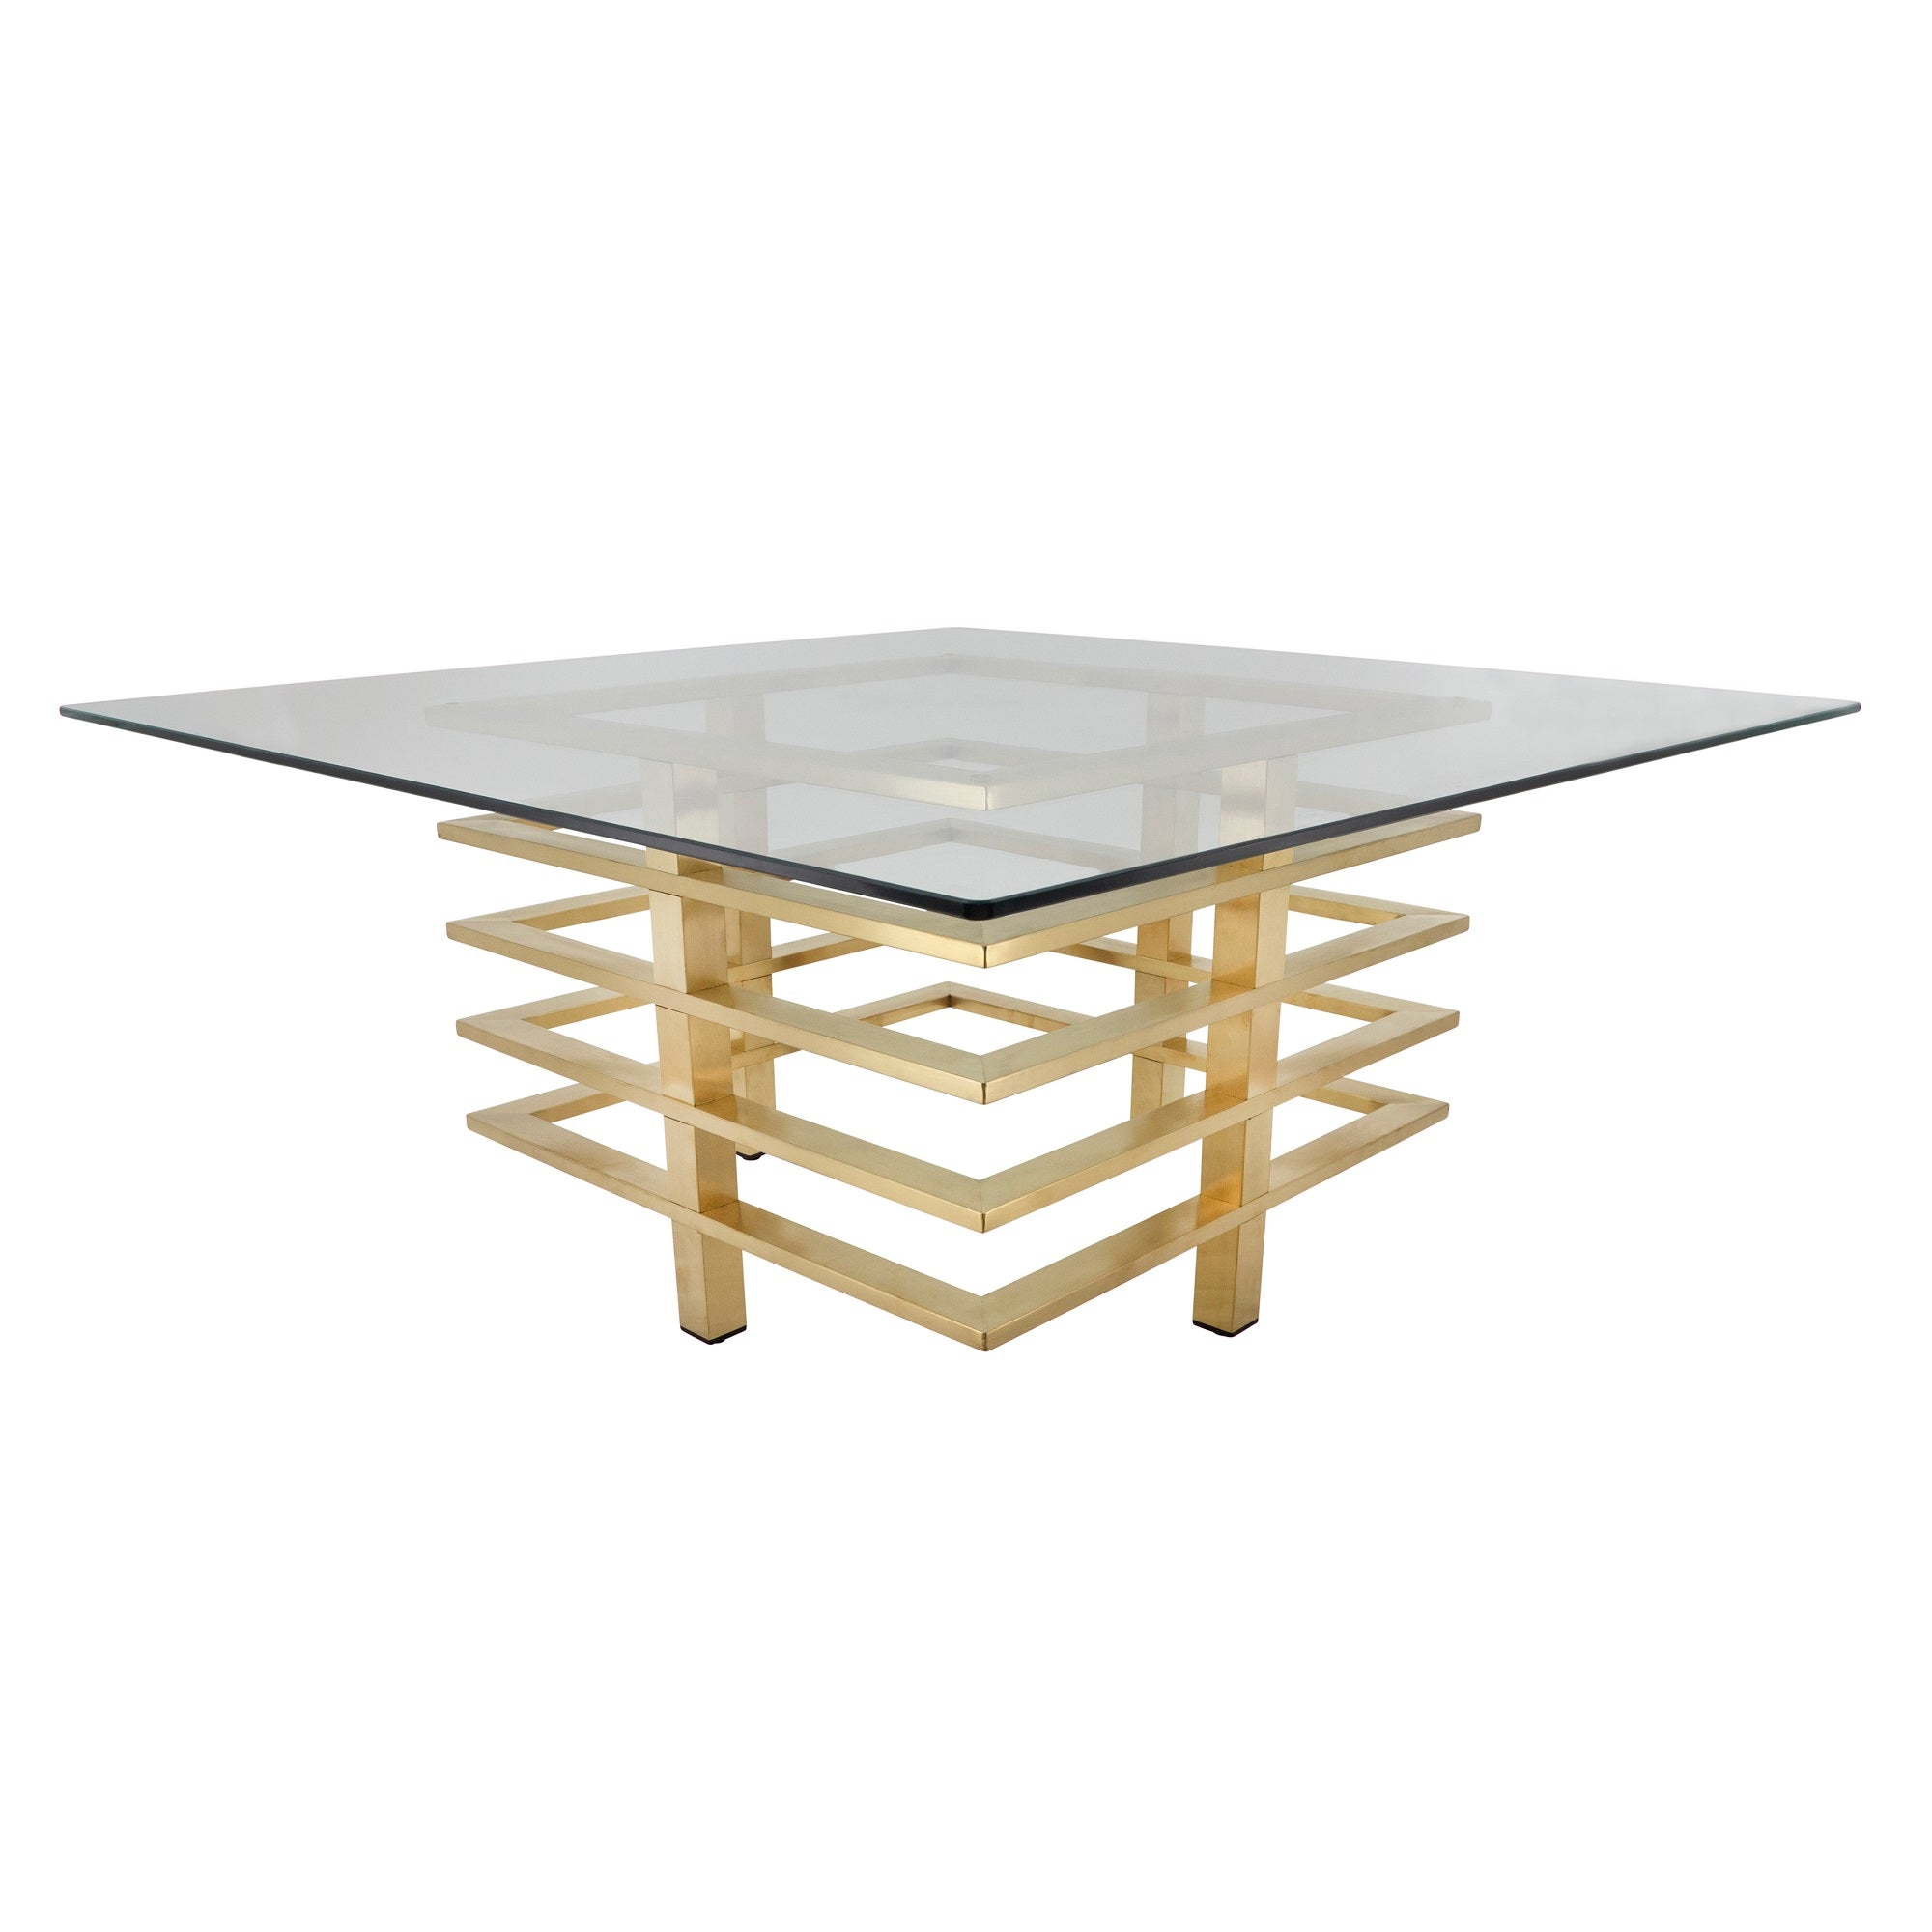 METAL STACKED COFFEE TABLE, GOLD - MATERIAL STAINLESS STEEL